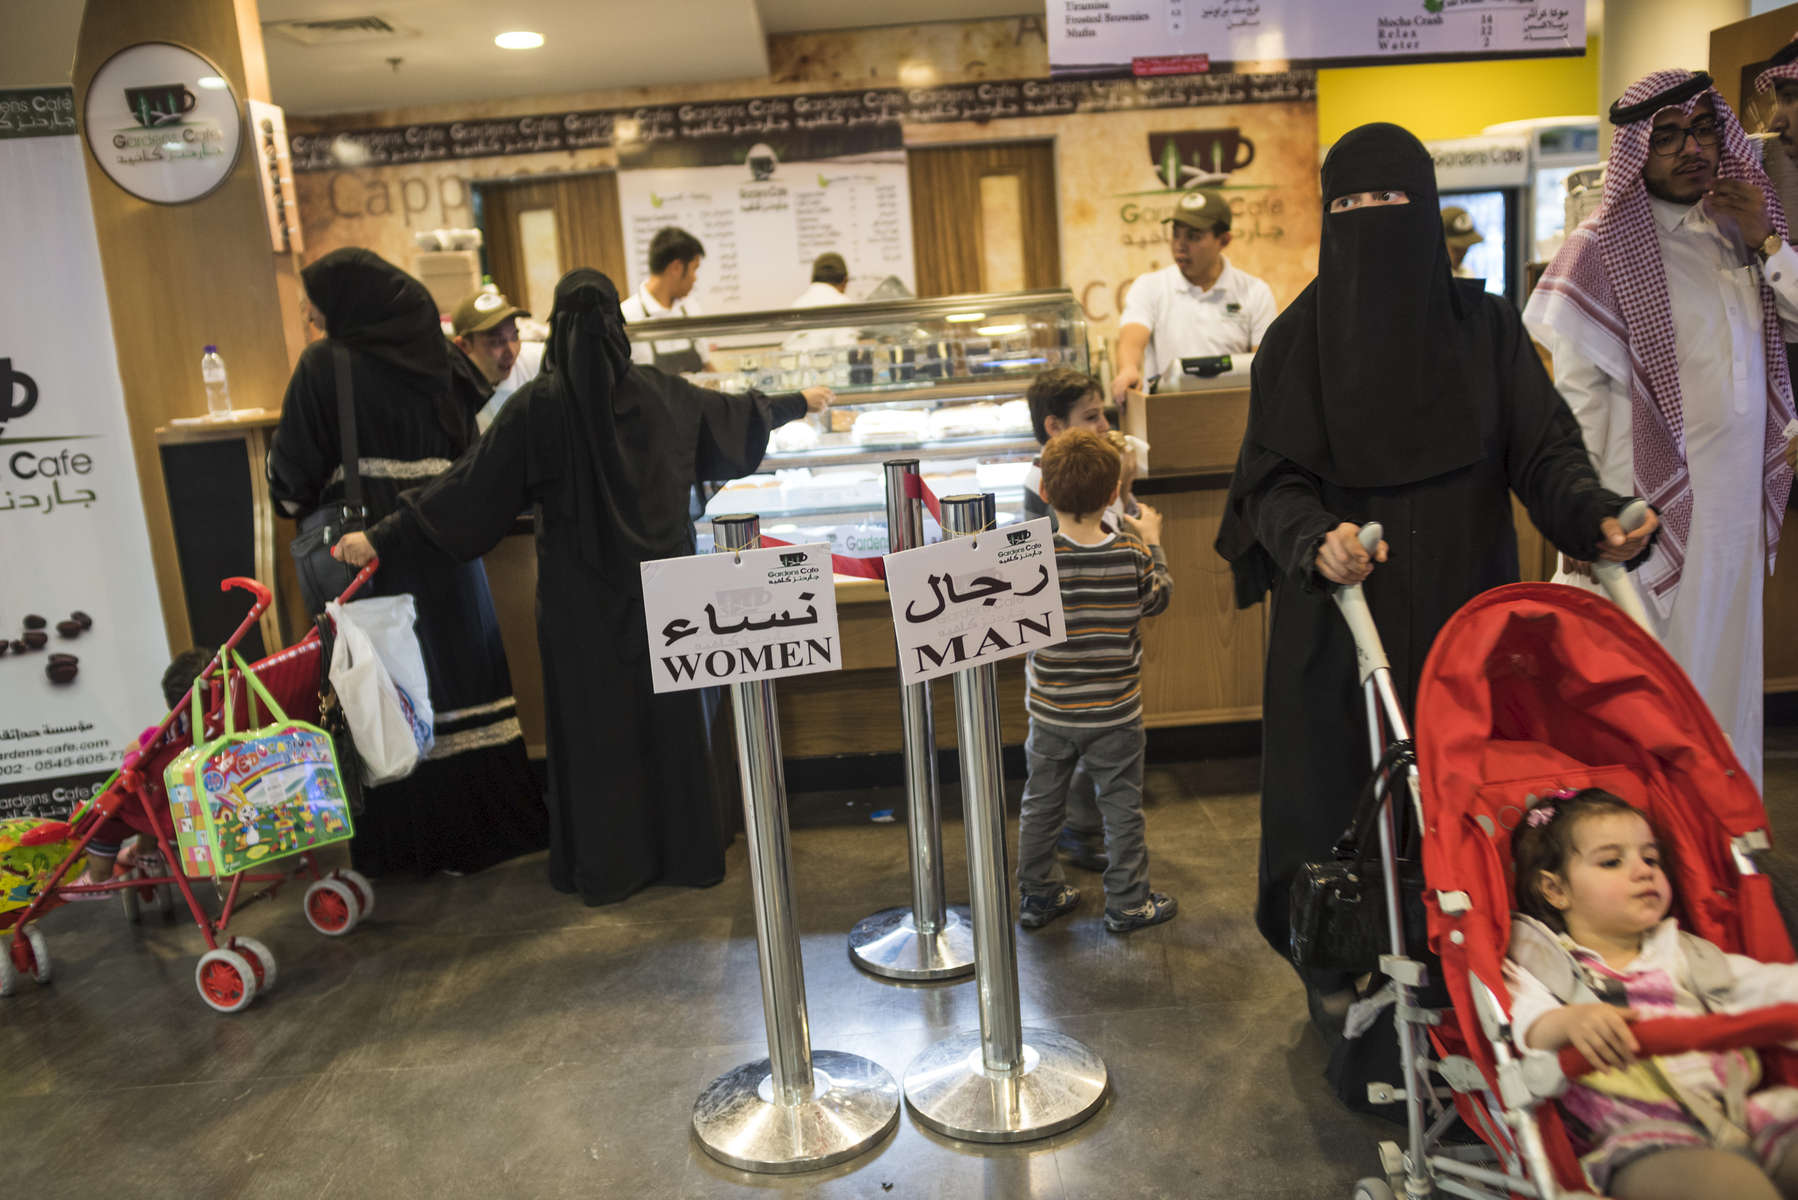 Separation is everywhere- even in line. Food outlets, like this café in Riyadh, must follow unique Saudi laws: All lines, counters, and eating areas are divided to keep unrelated men and women apart, although customers sometimes ignore the signs. Saudi authorities insist, to an extent unmatched in any other Muslim country, that Islam demands this separation in public and that these rules keep society orderly, honor tradition, and show respect for God.